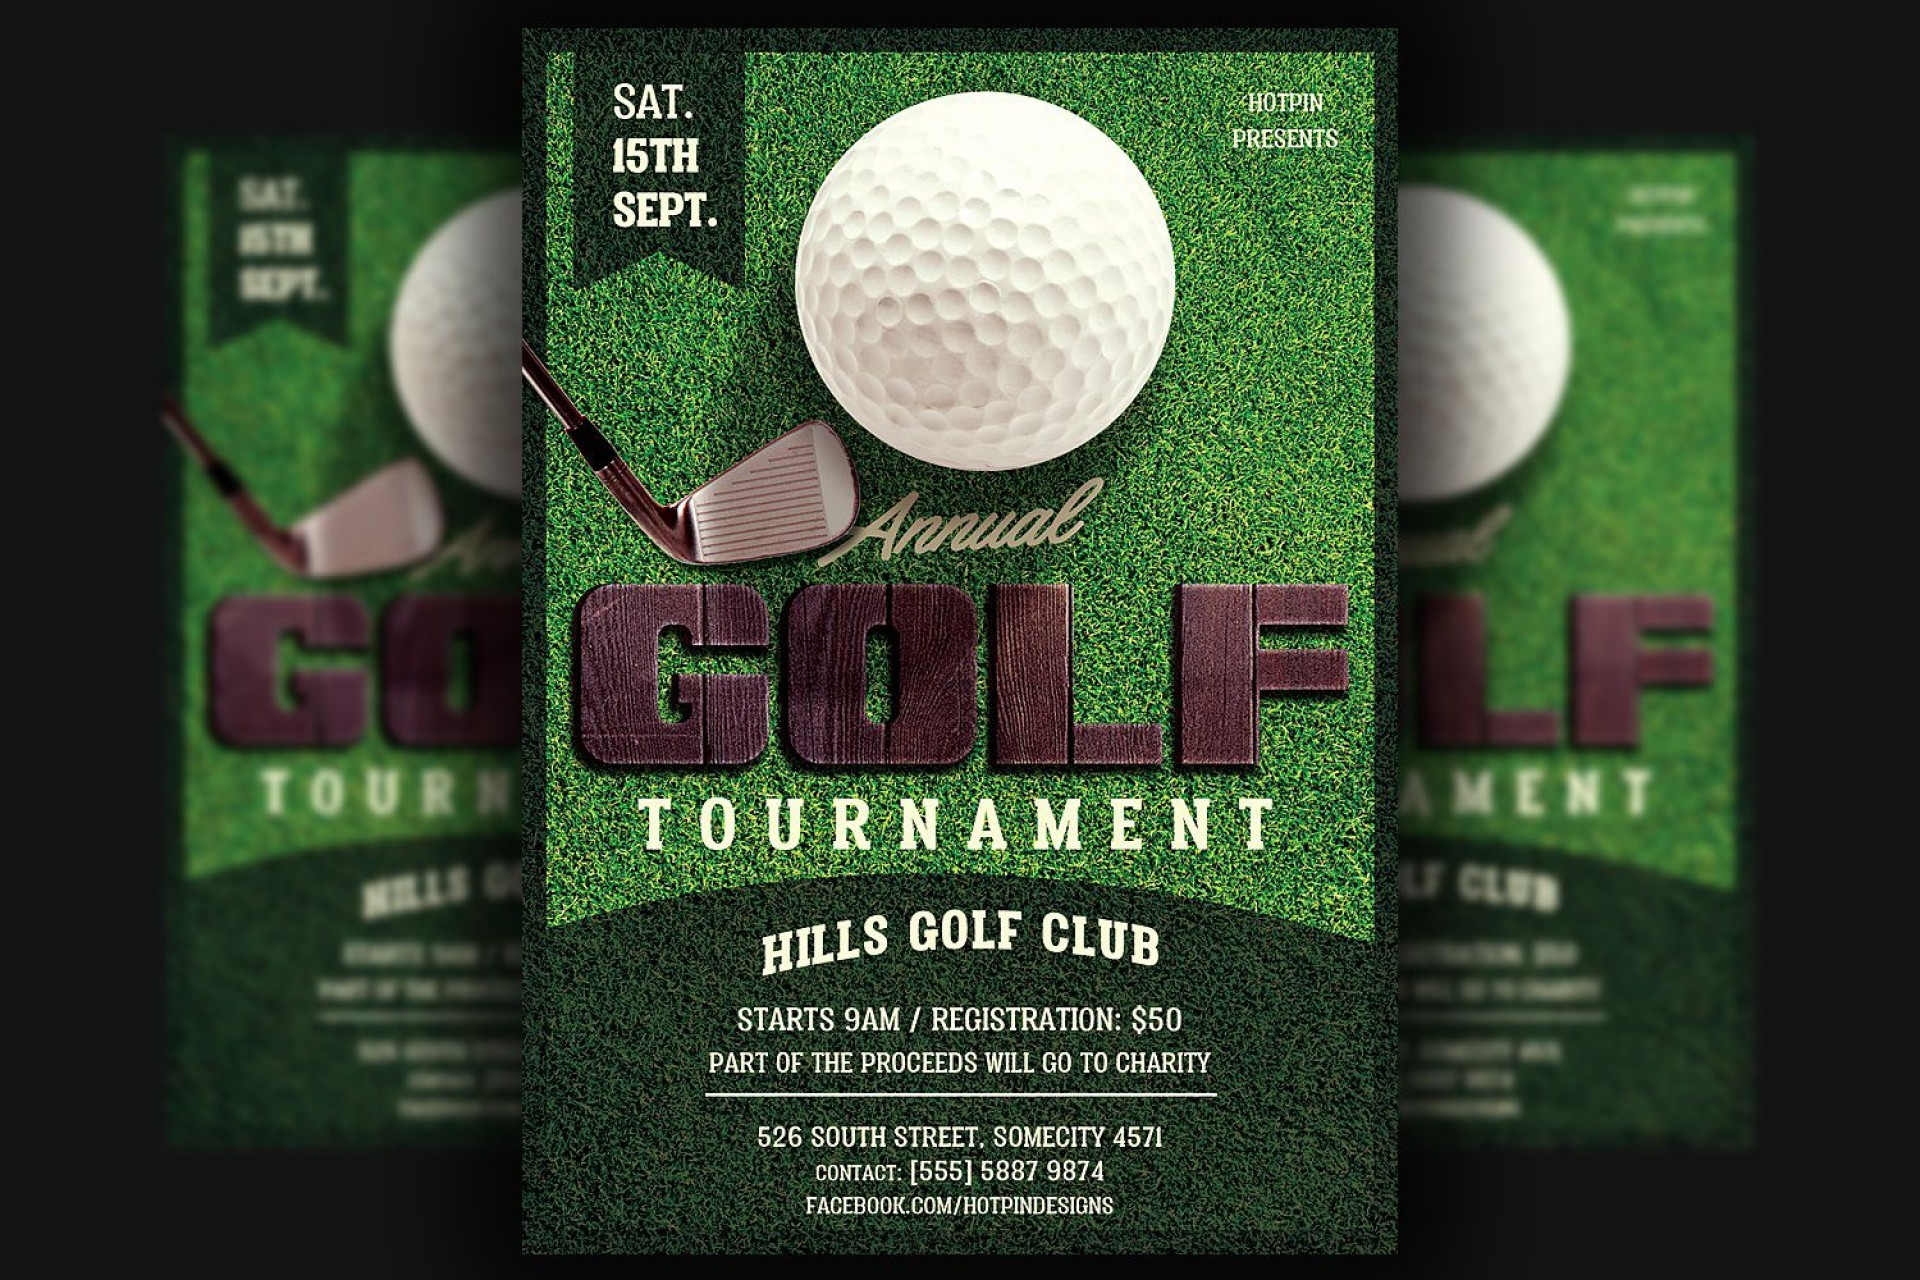 003 Surprising Golf Tournament Flyer Template Highest Quality  Word Free Pdf1920